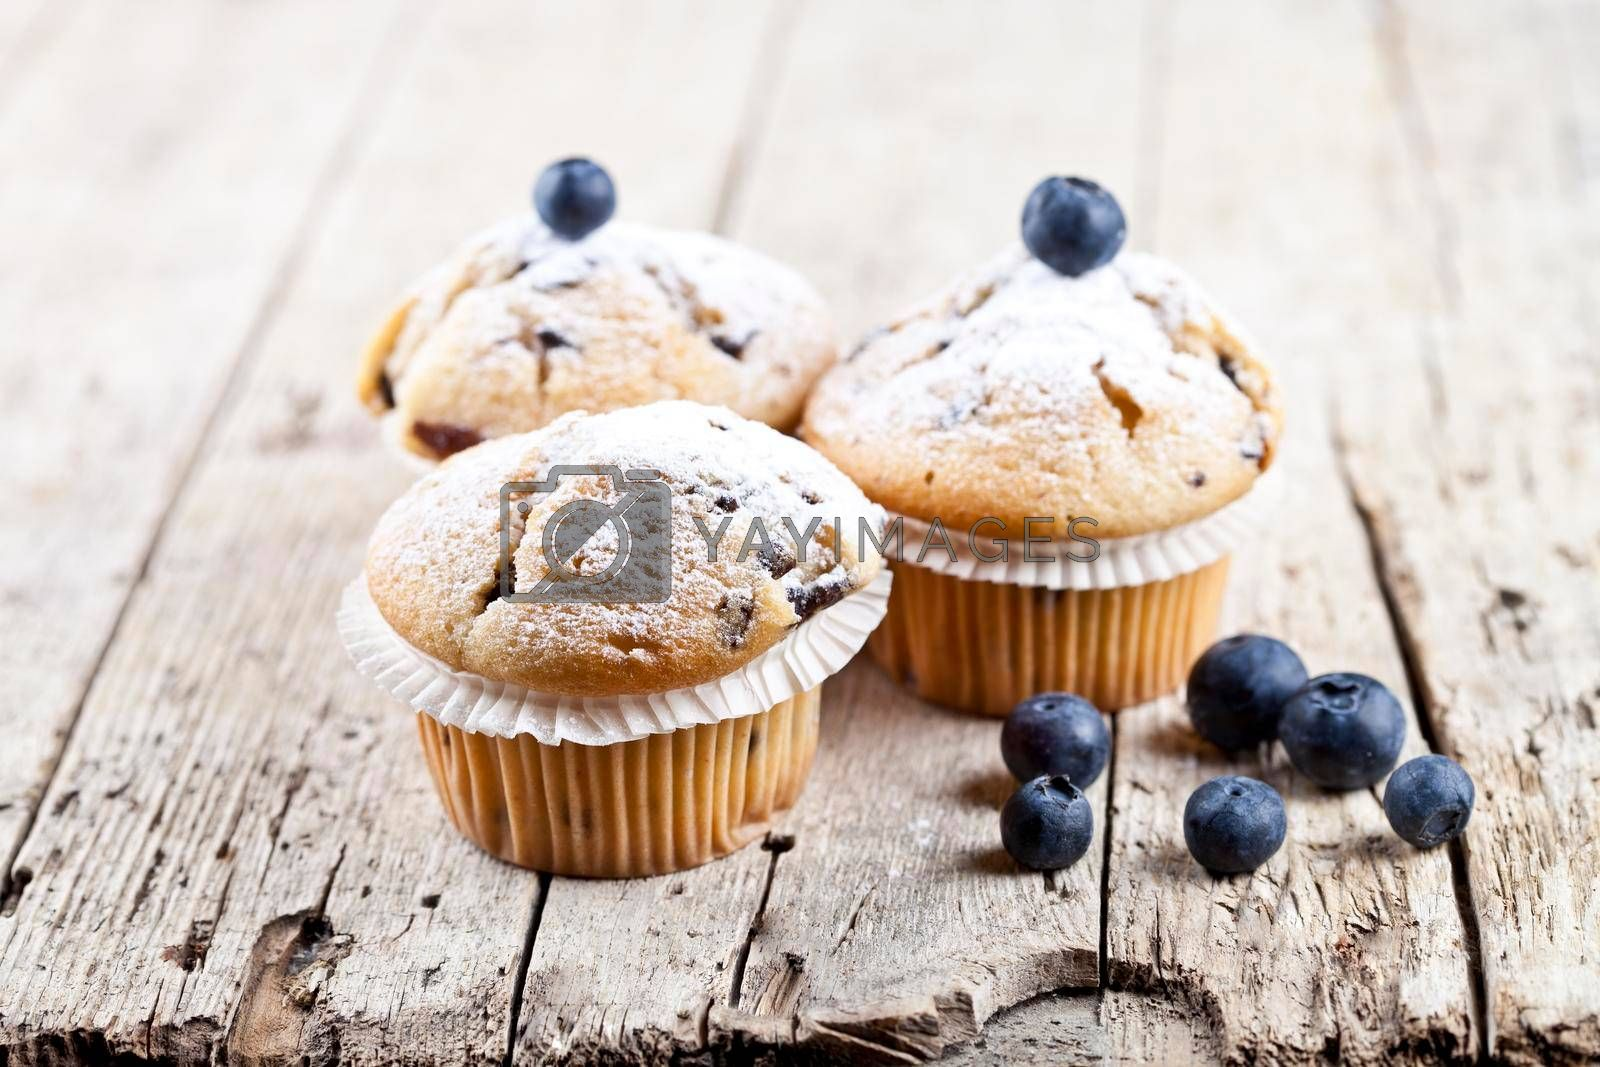 Homemade fresh muffins with blueberries on rustic wooden table background.